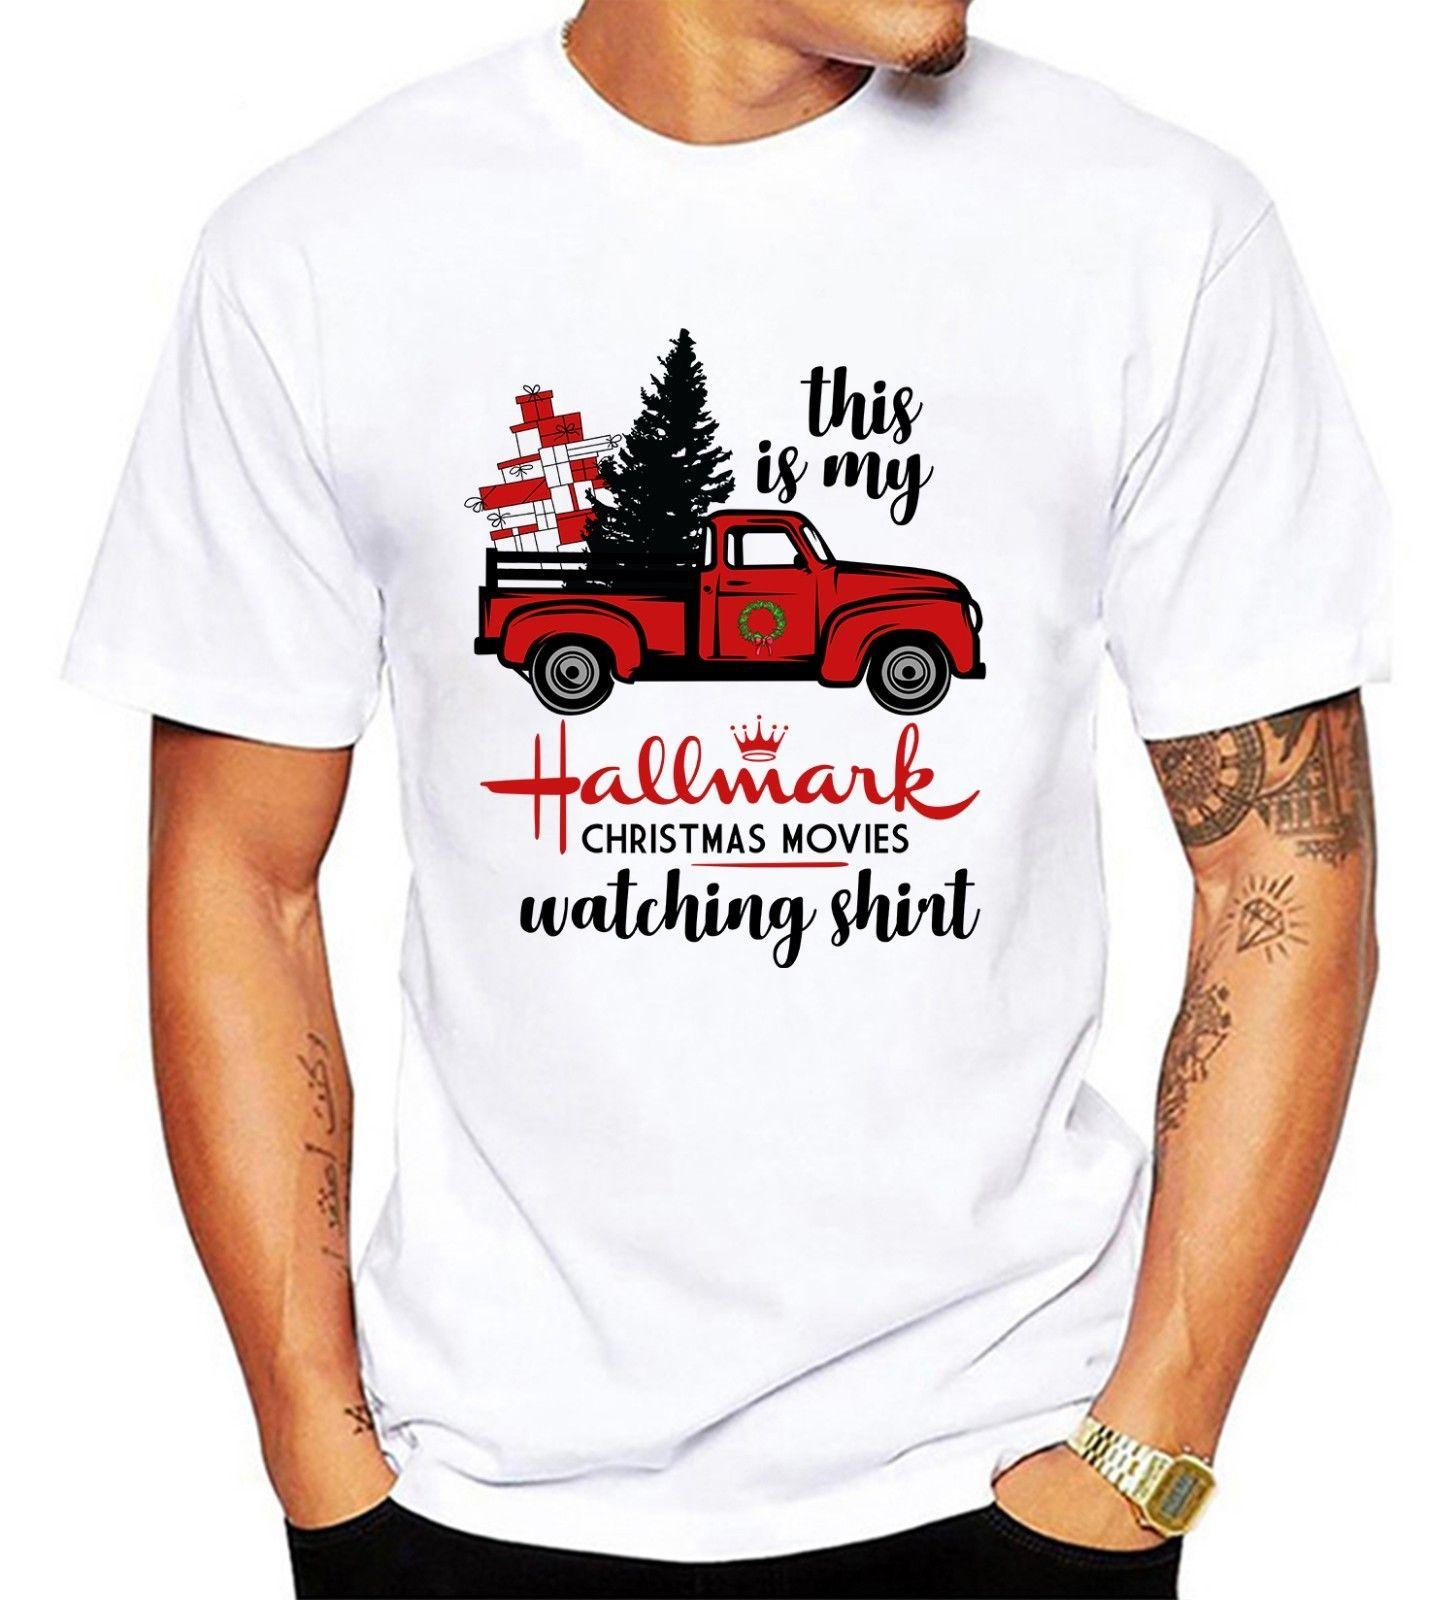 Hallmark Christmas T Shirt.This Is My Hallmark Christmas Movie Watching Shirt Men Youth T Shirt Online T Shirts Funky T Shirts From Funnytees45 Price Dhgate Com